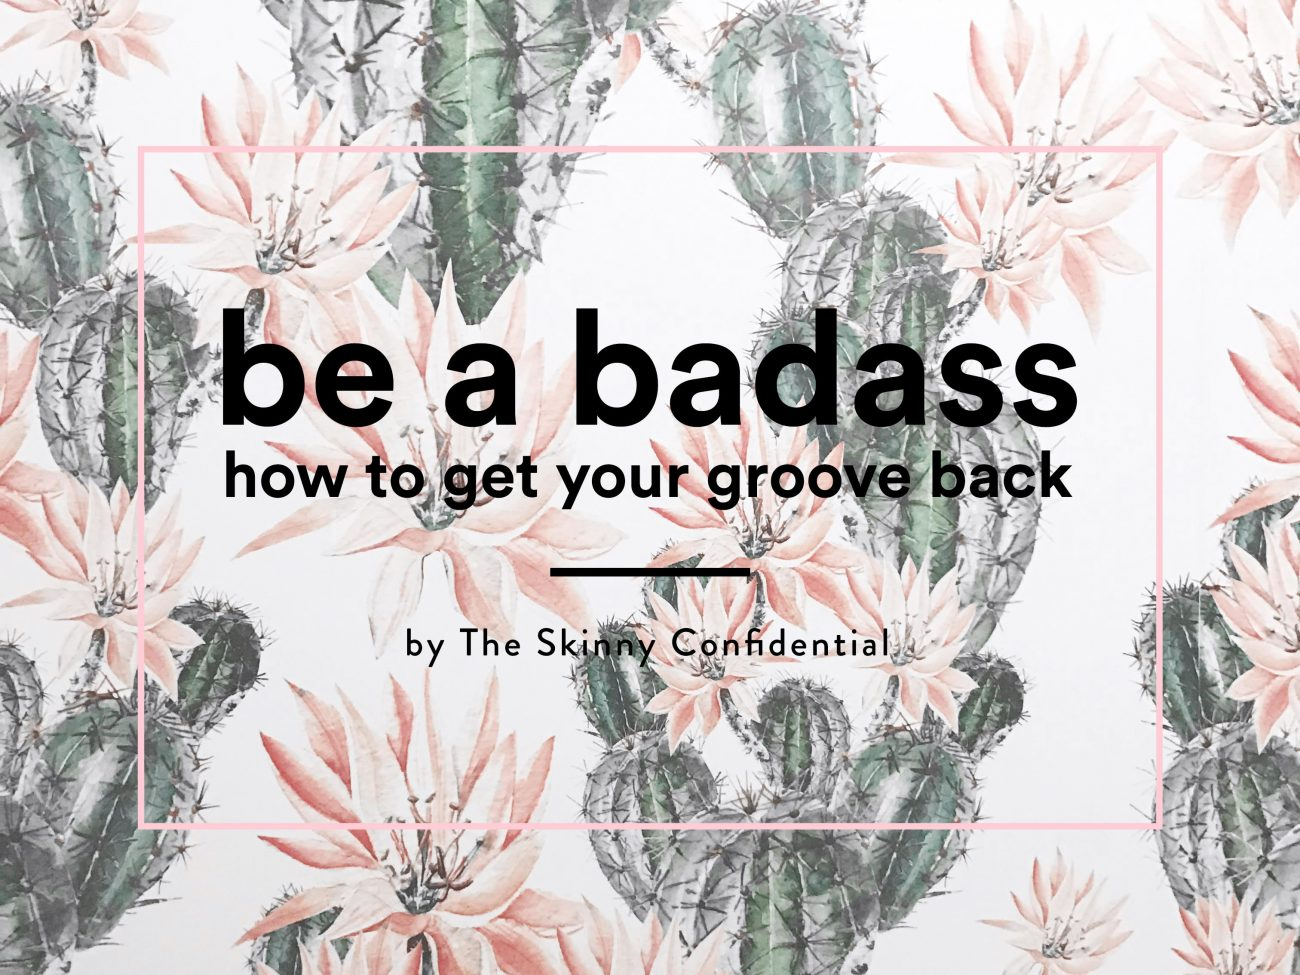 Where focus goes energy flows. How to be a badass | by the skinny confidential